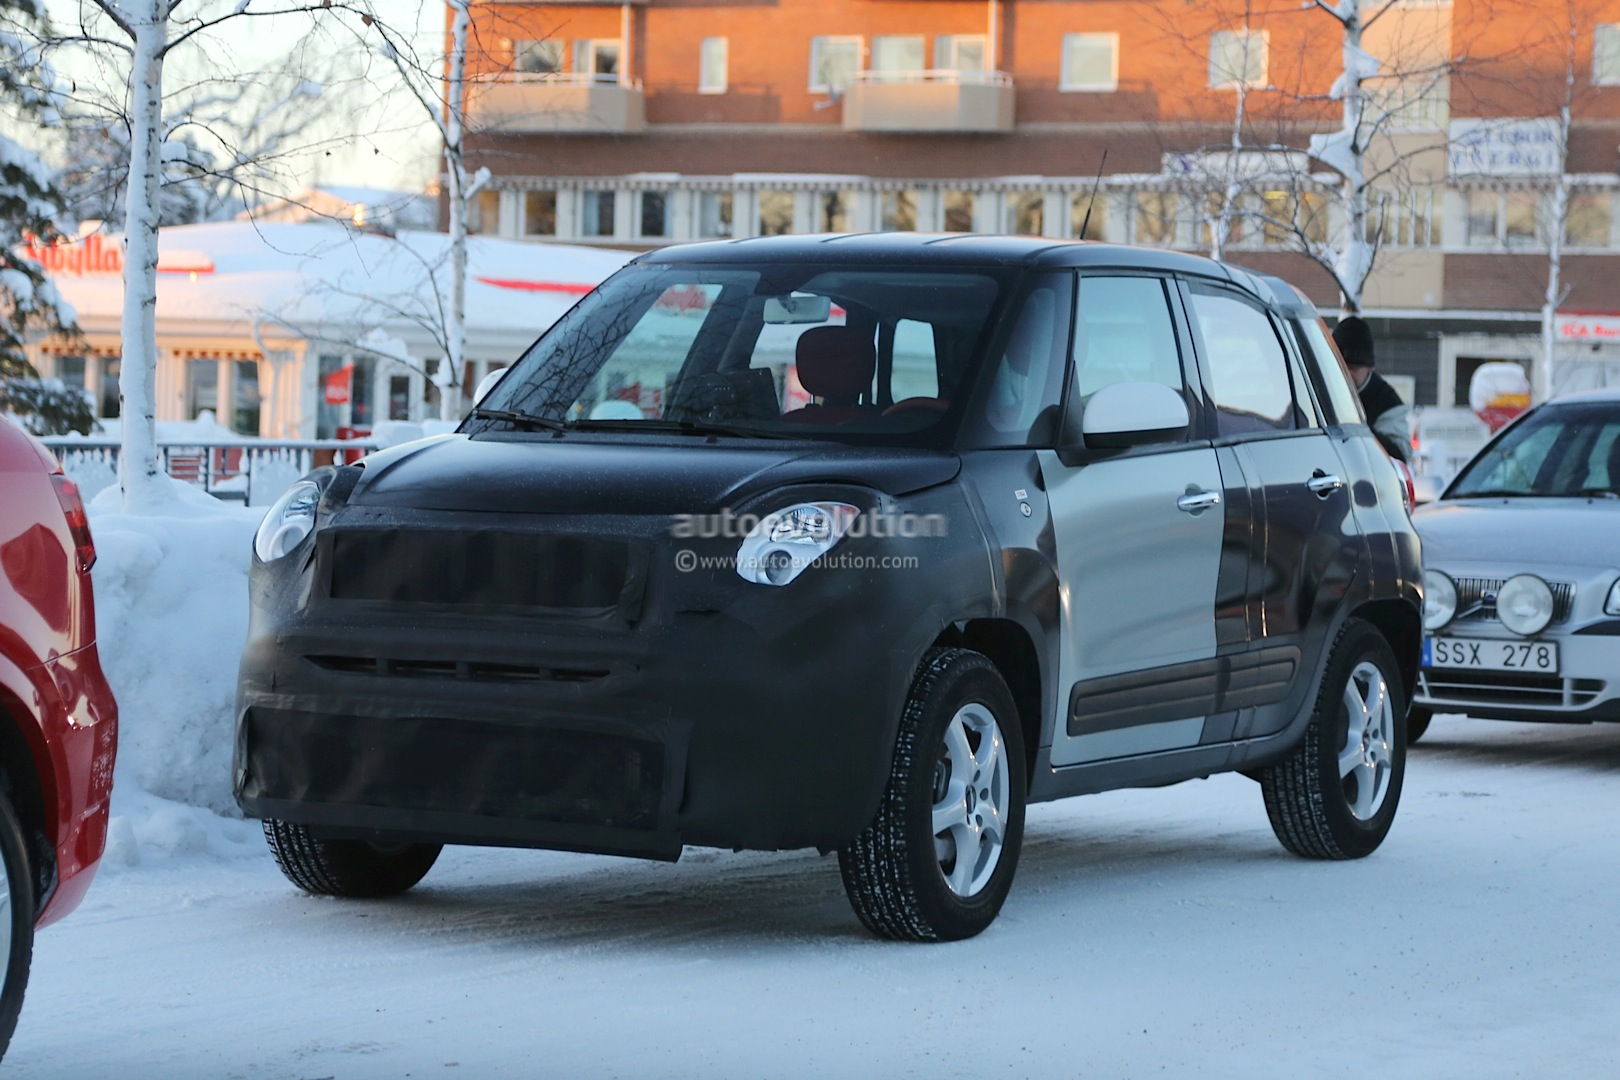 2014 - [Jeep] Renegade - Page 2 Spyshots-2015-jeep-b-suv-endures-the-cold-in-scandinavia_8